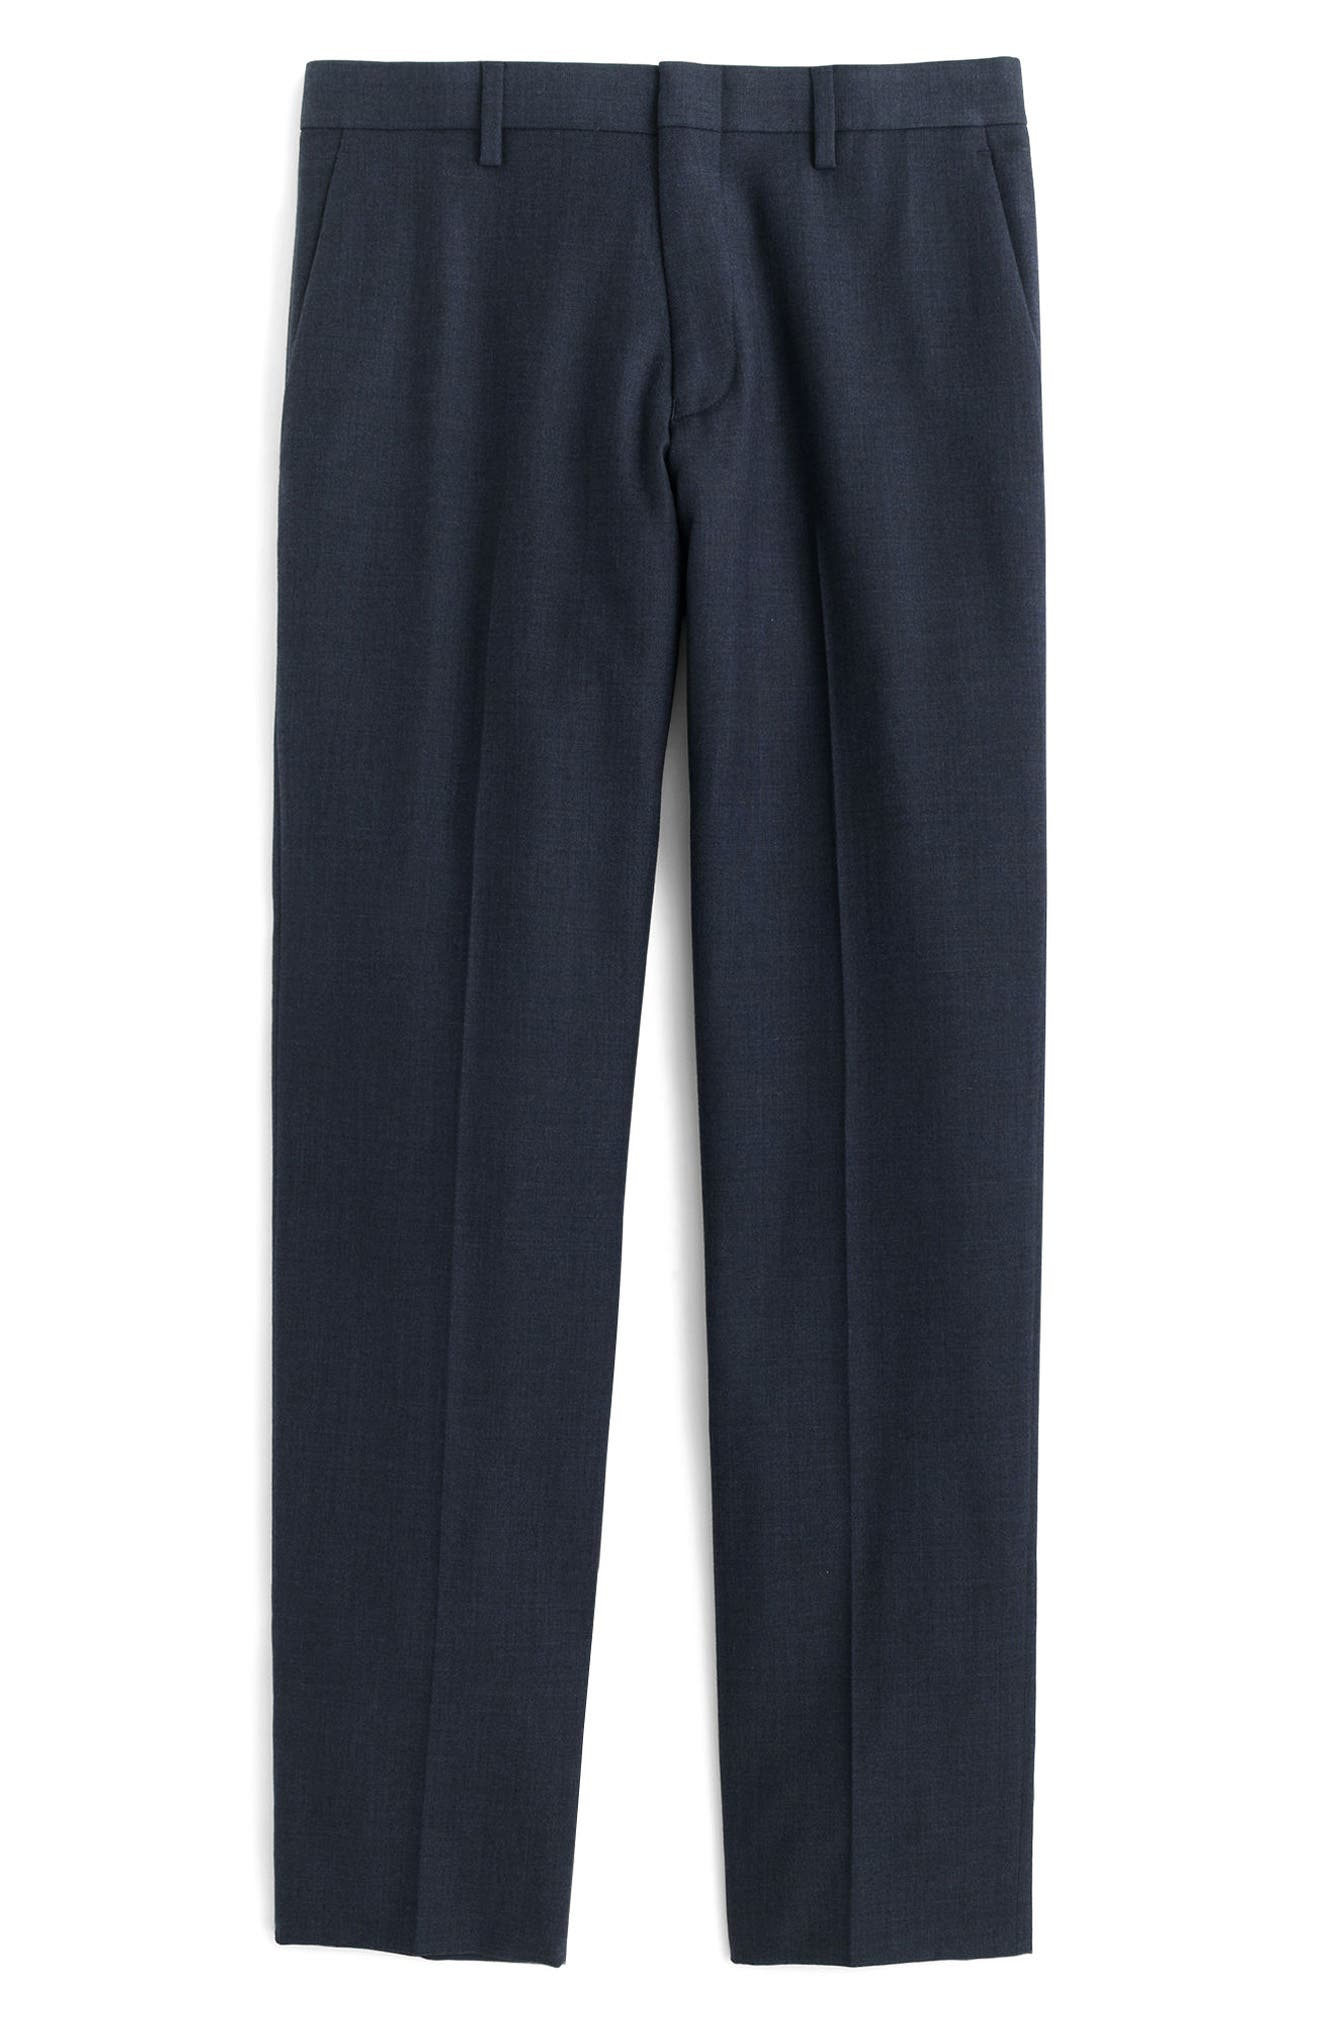 Ludlow Flat Front Solid Wool Trousers,                             Alternate thumbnail 14, color,